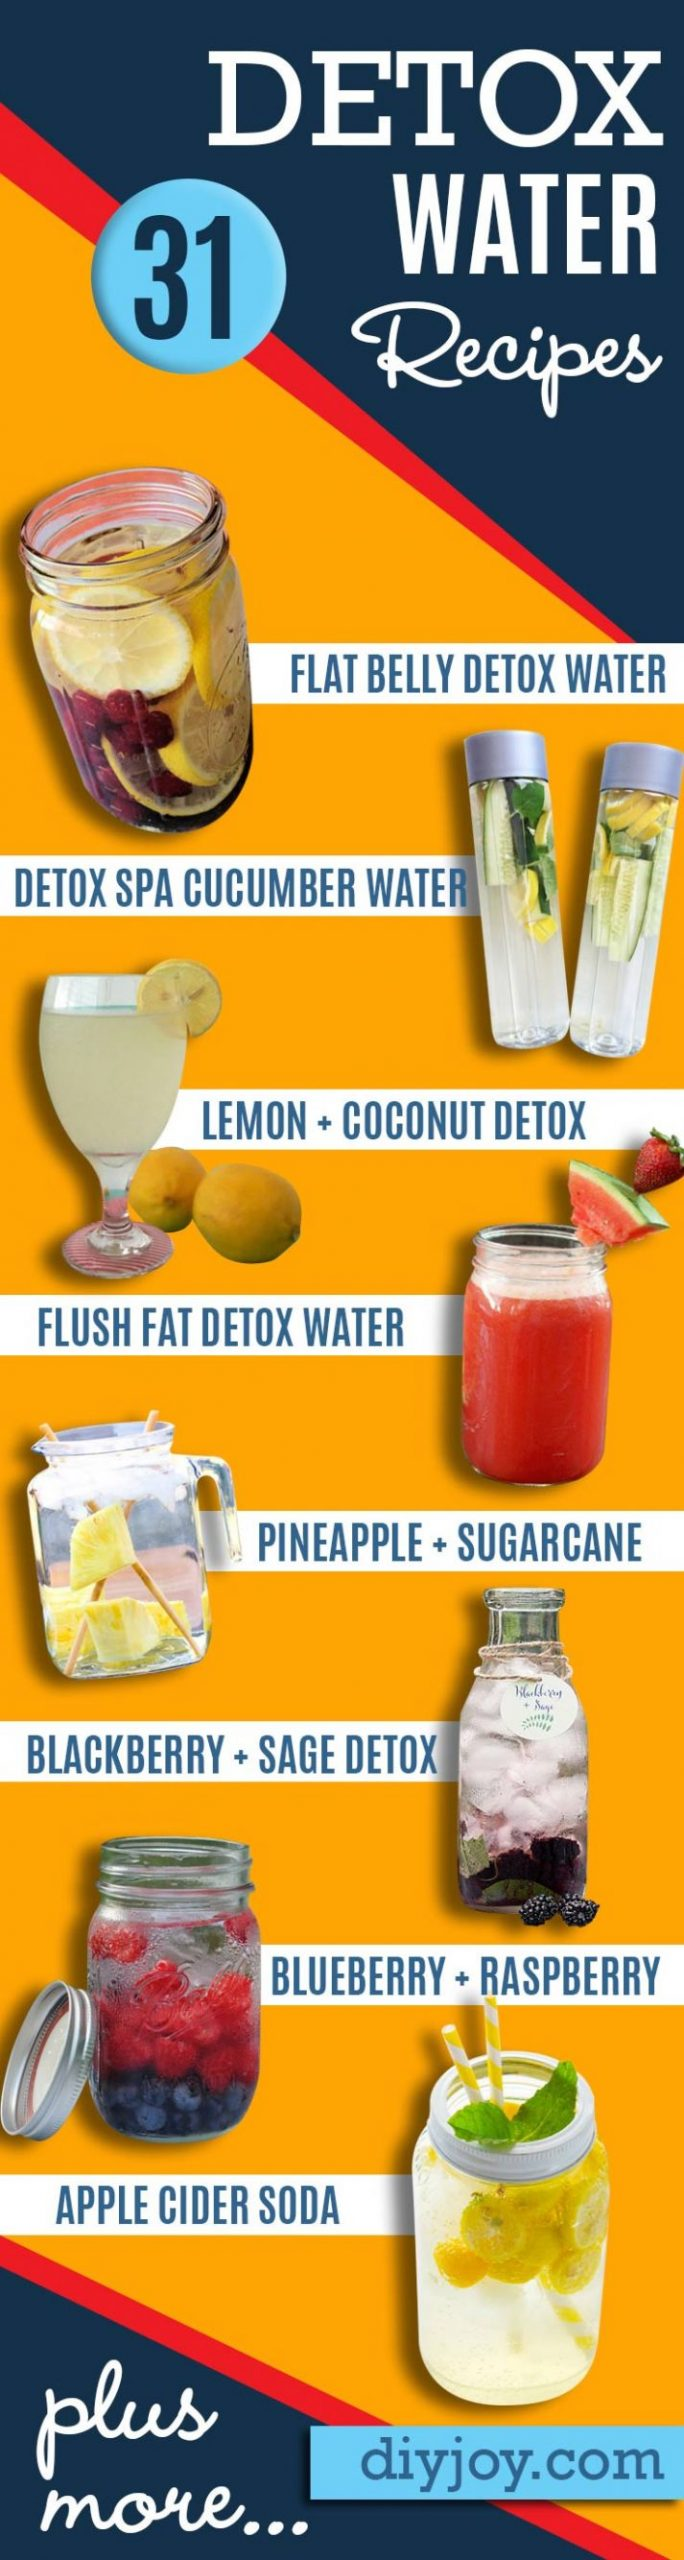 12 Detox Water Recipes